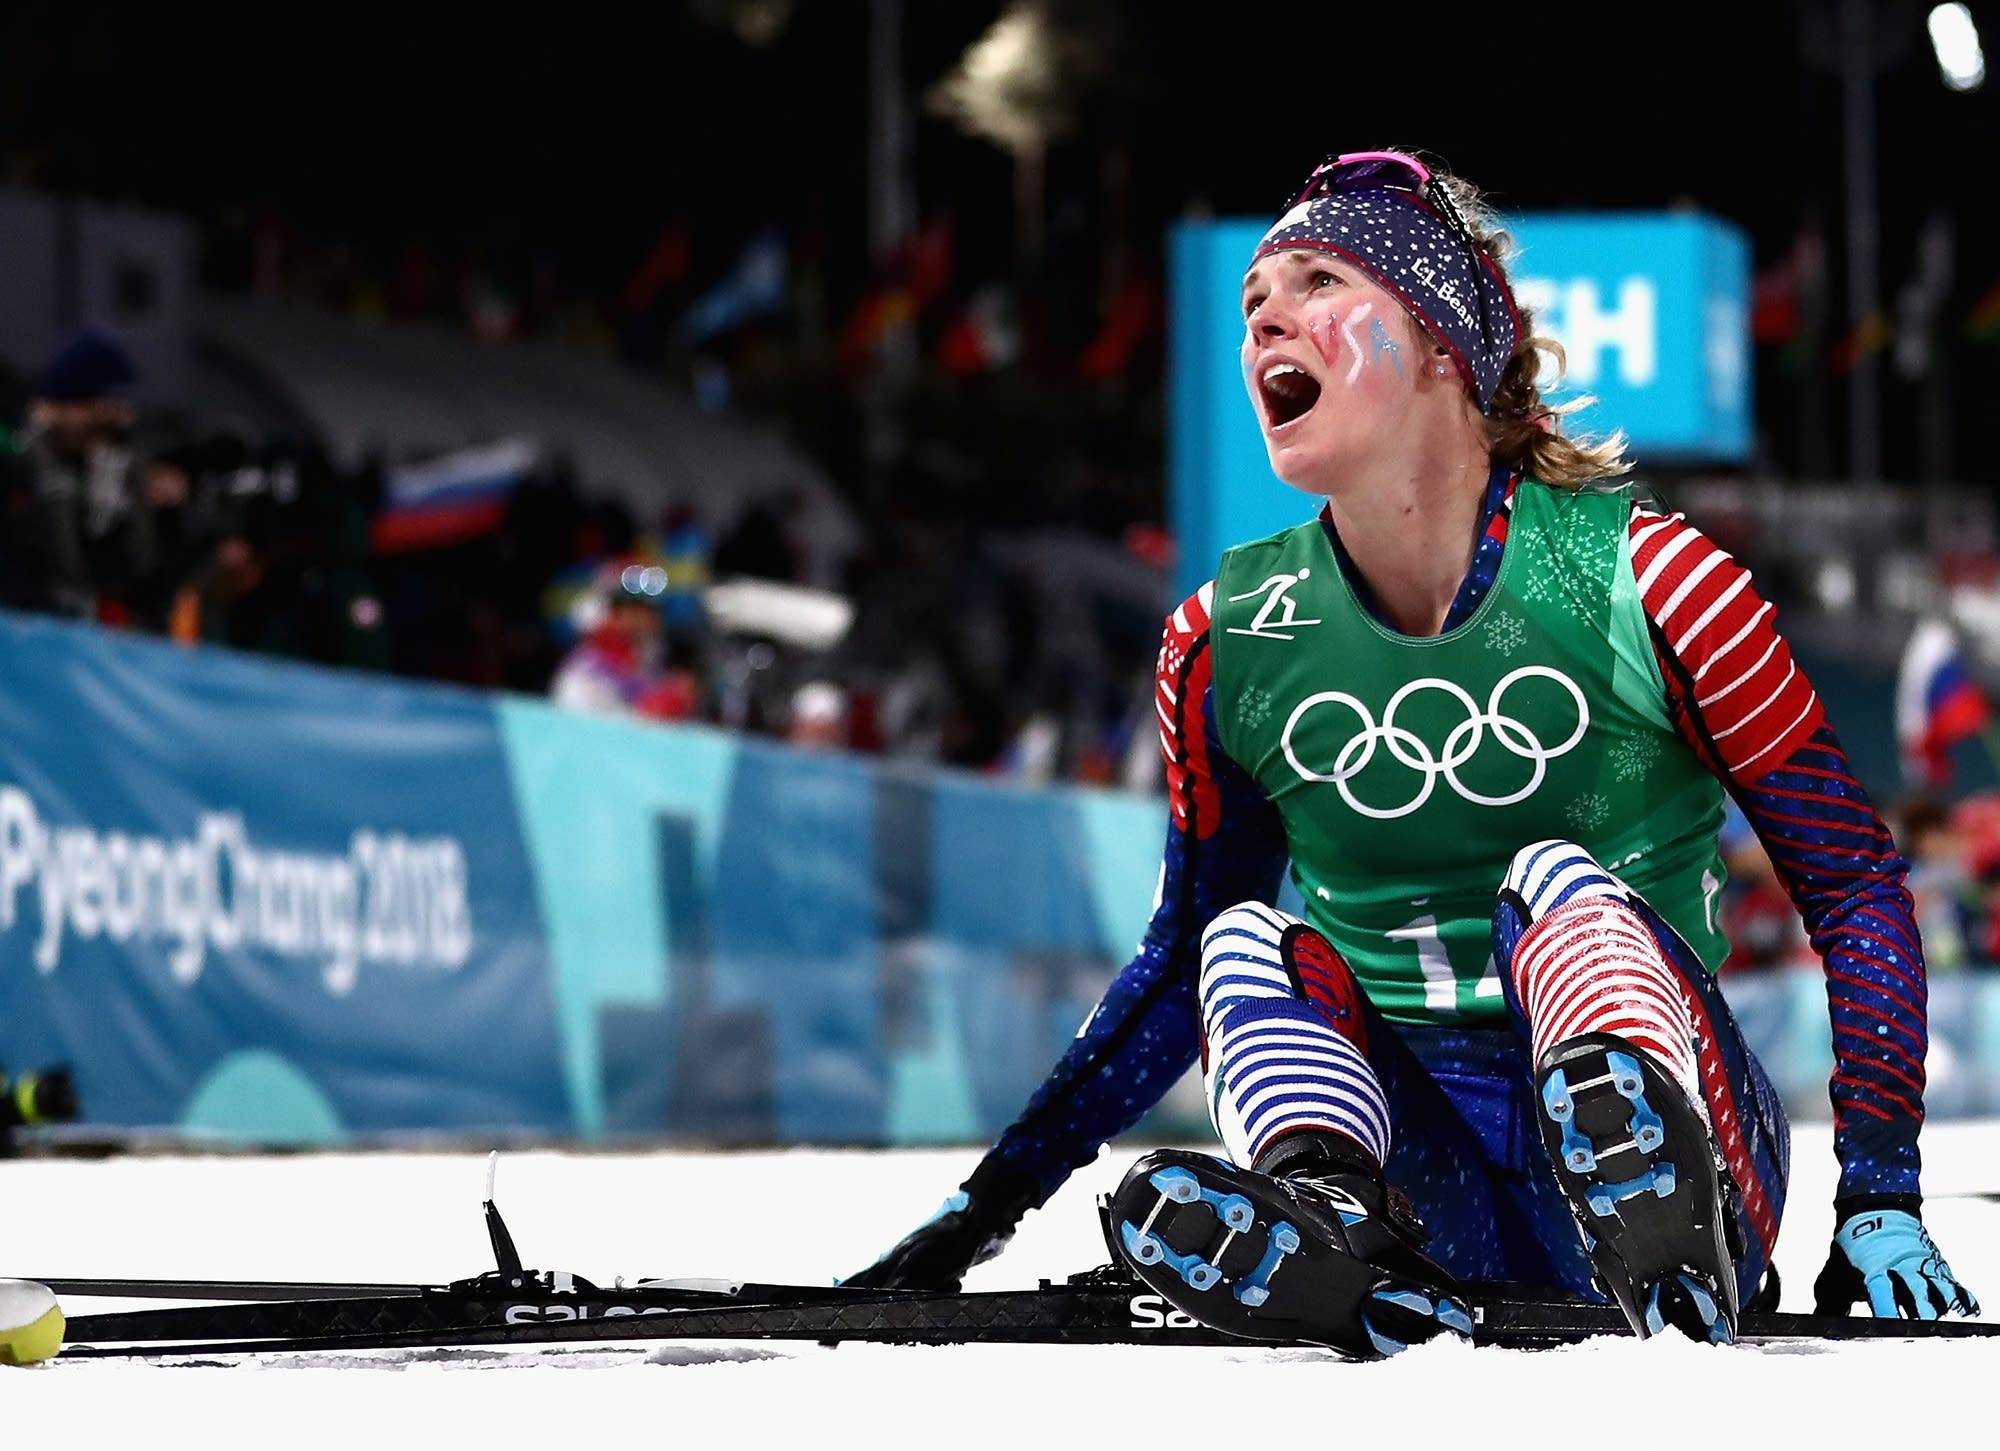 Jessica Diggins of the United States reacts as she wins gold.